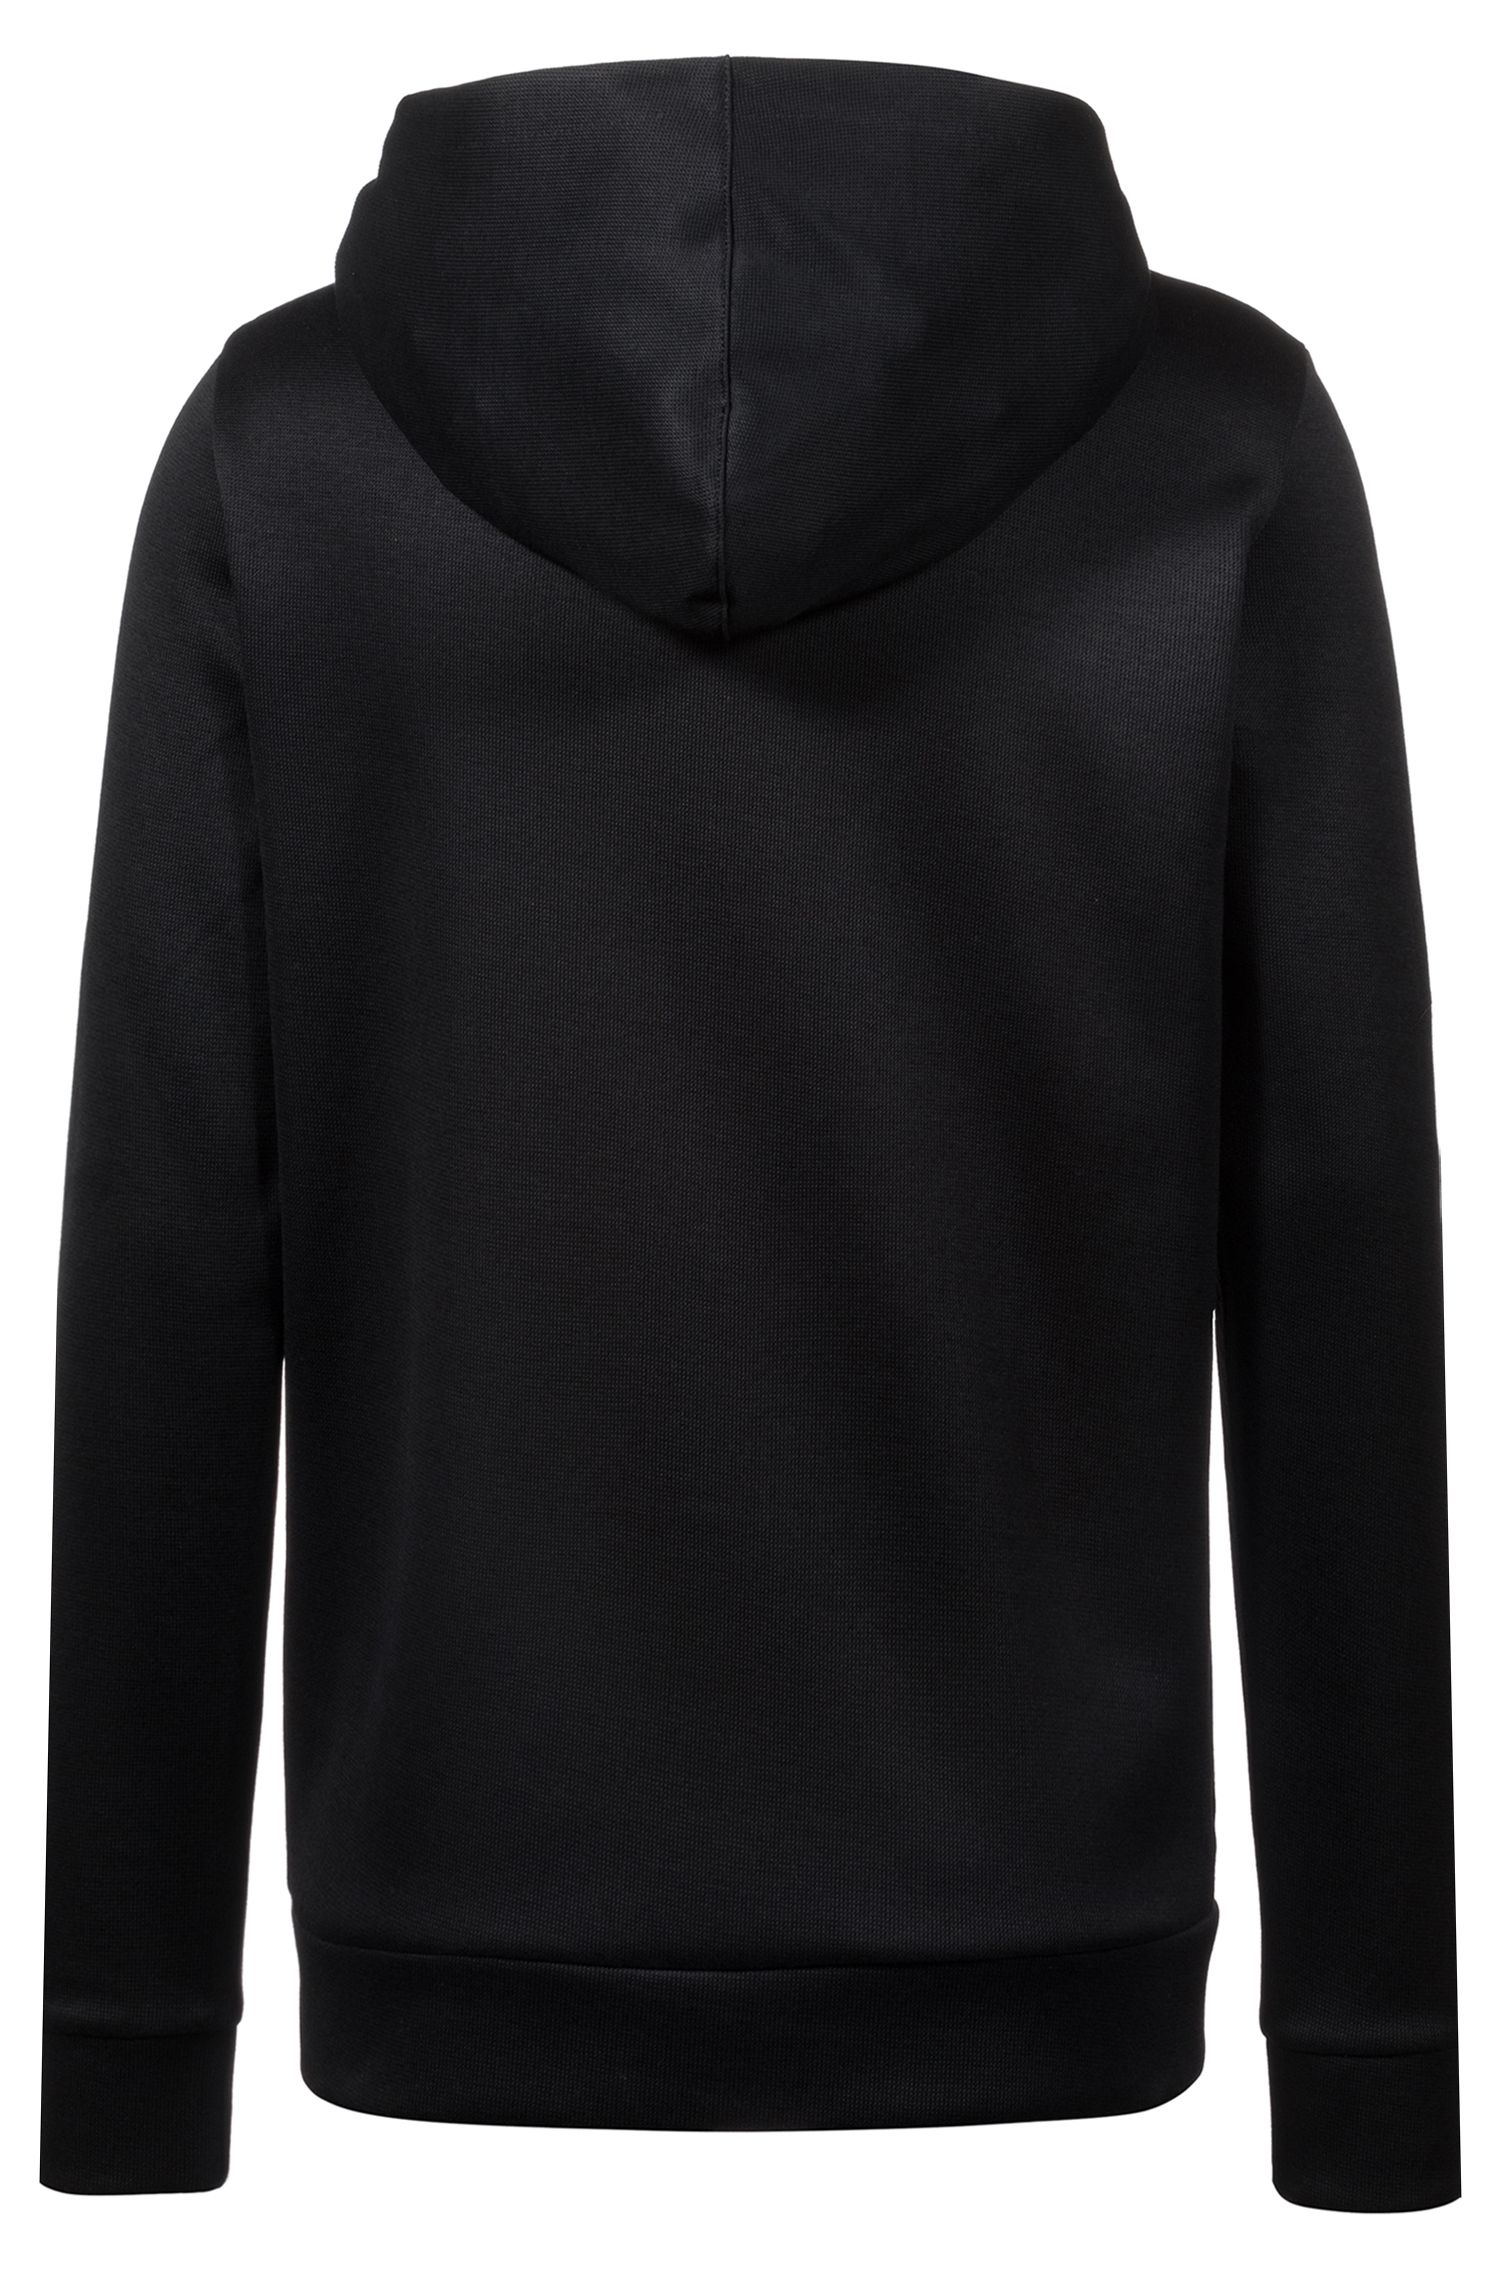 Relaxed-fit hooded sweatshirt in French rib cotton, Black